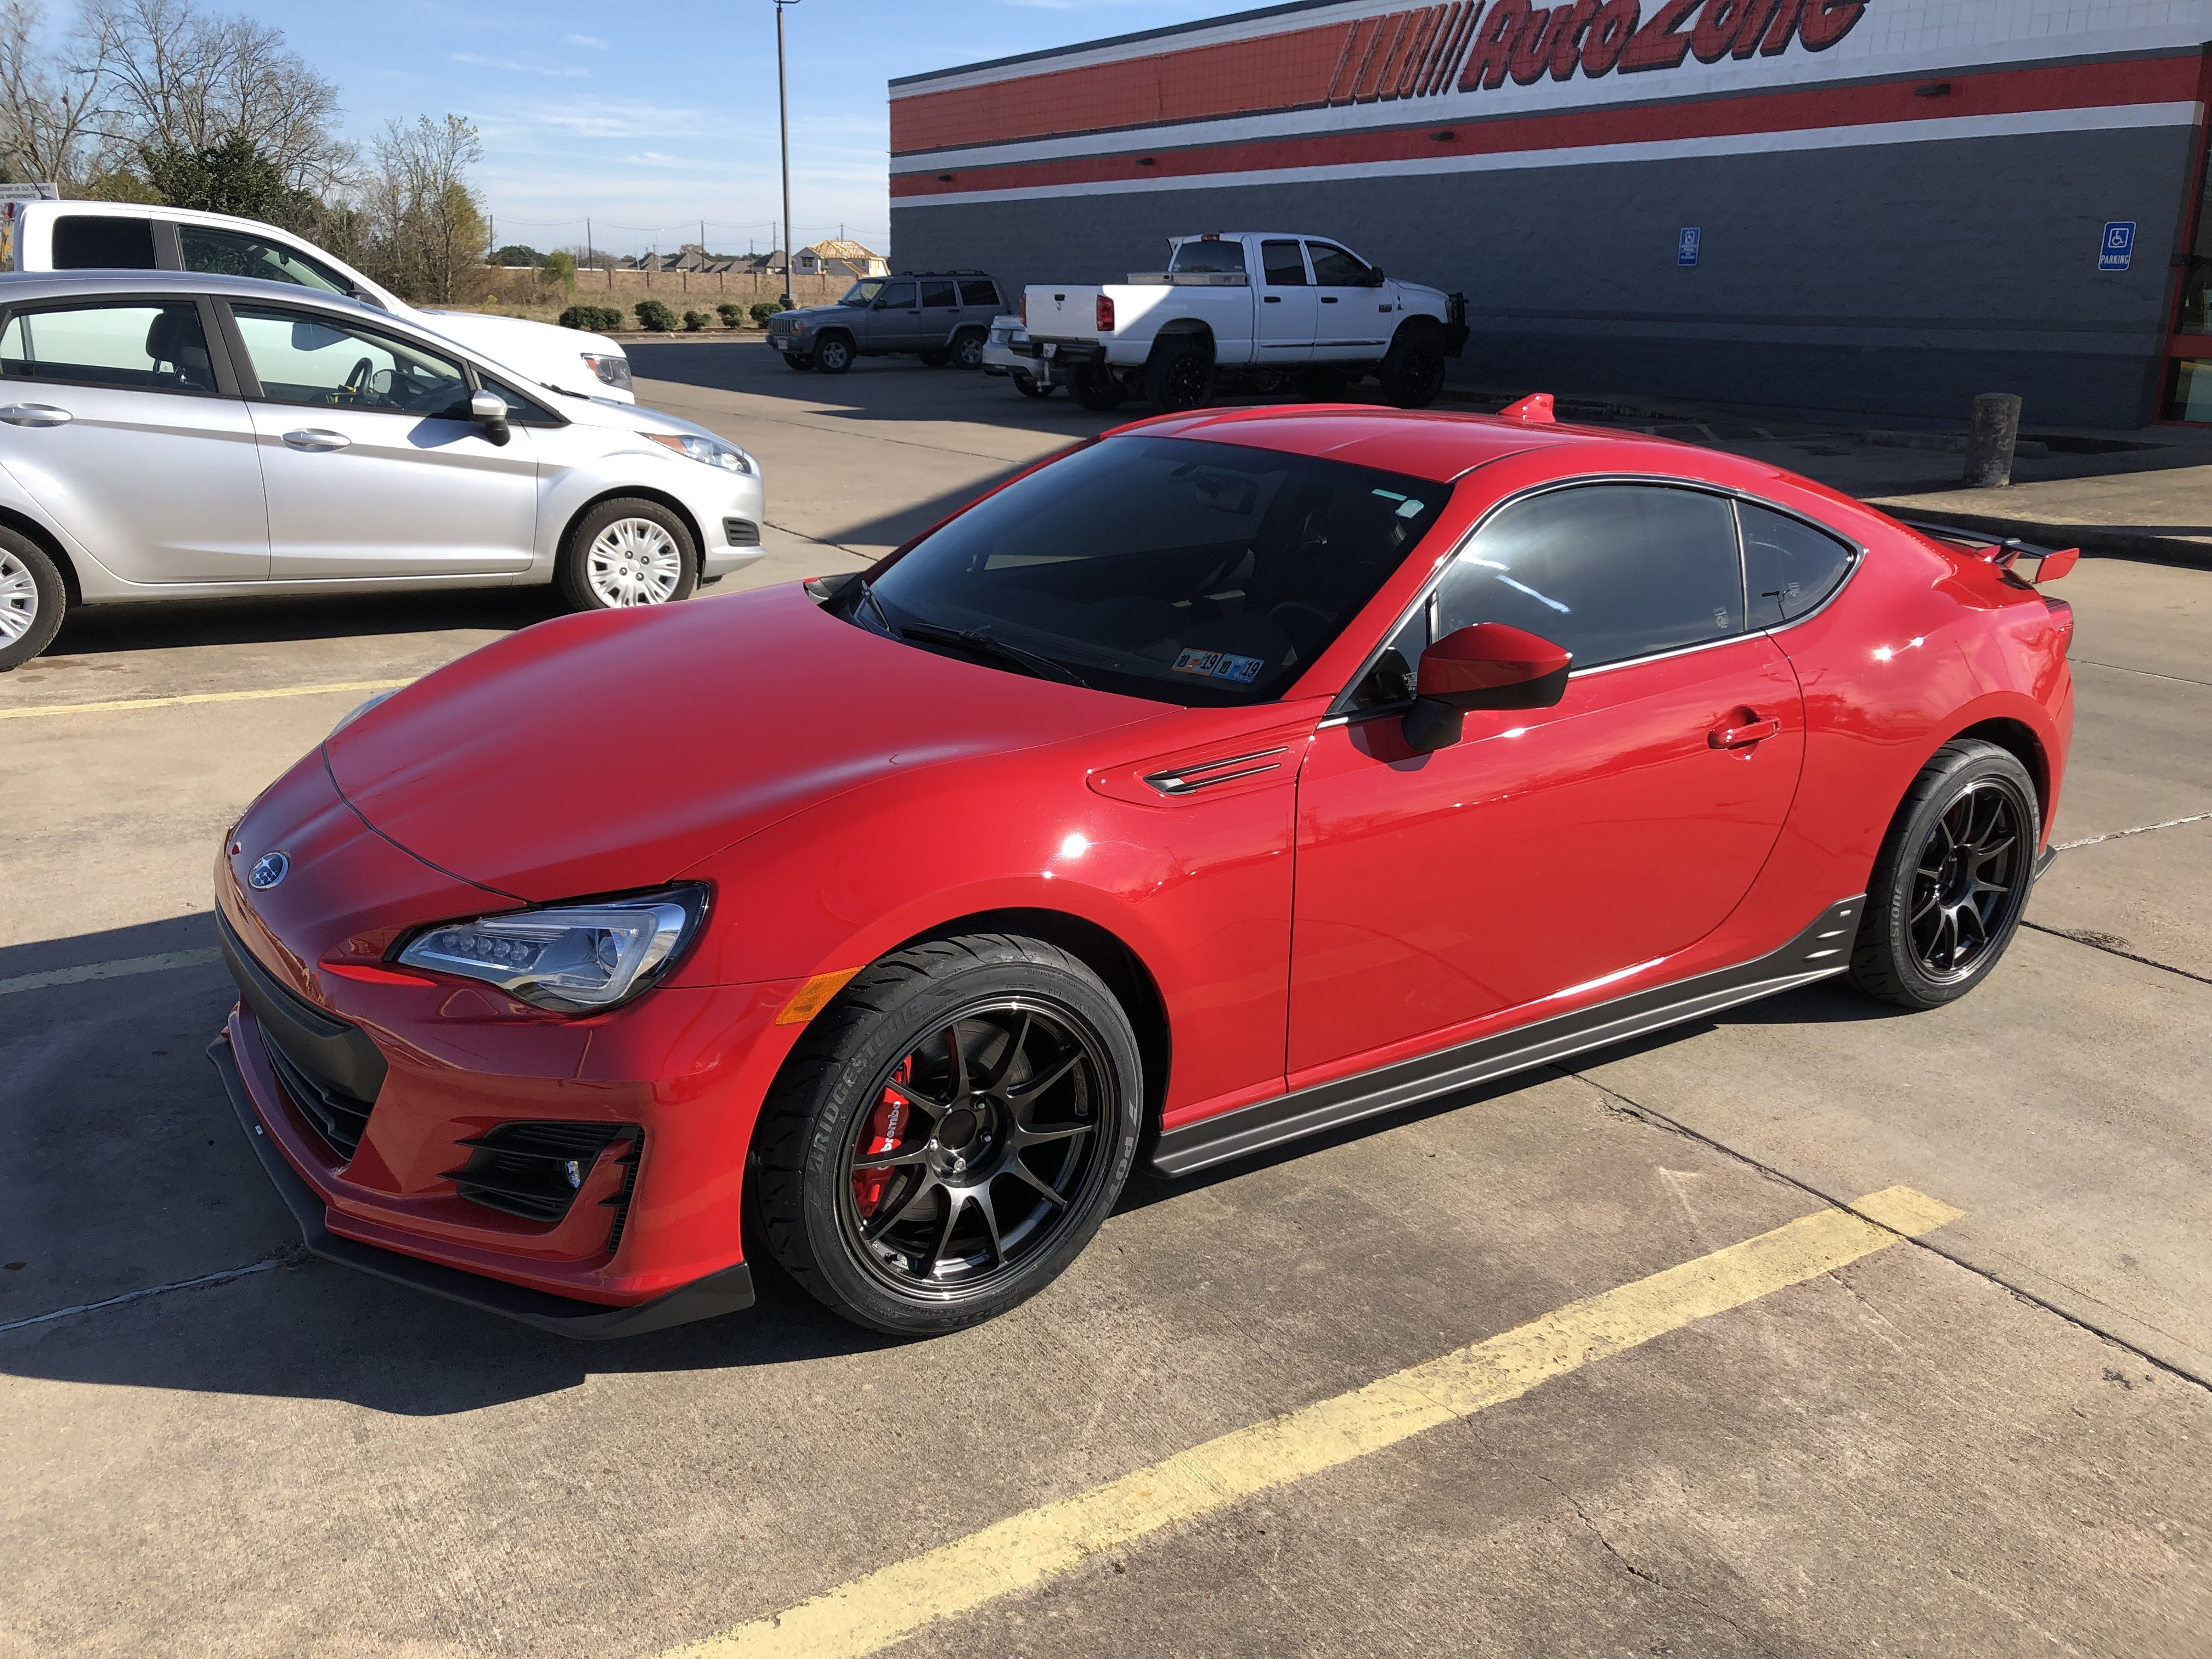 2017 Brz Performance Pack Scca Autocross Stx Project Car For 2019 Season In Houston